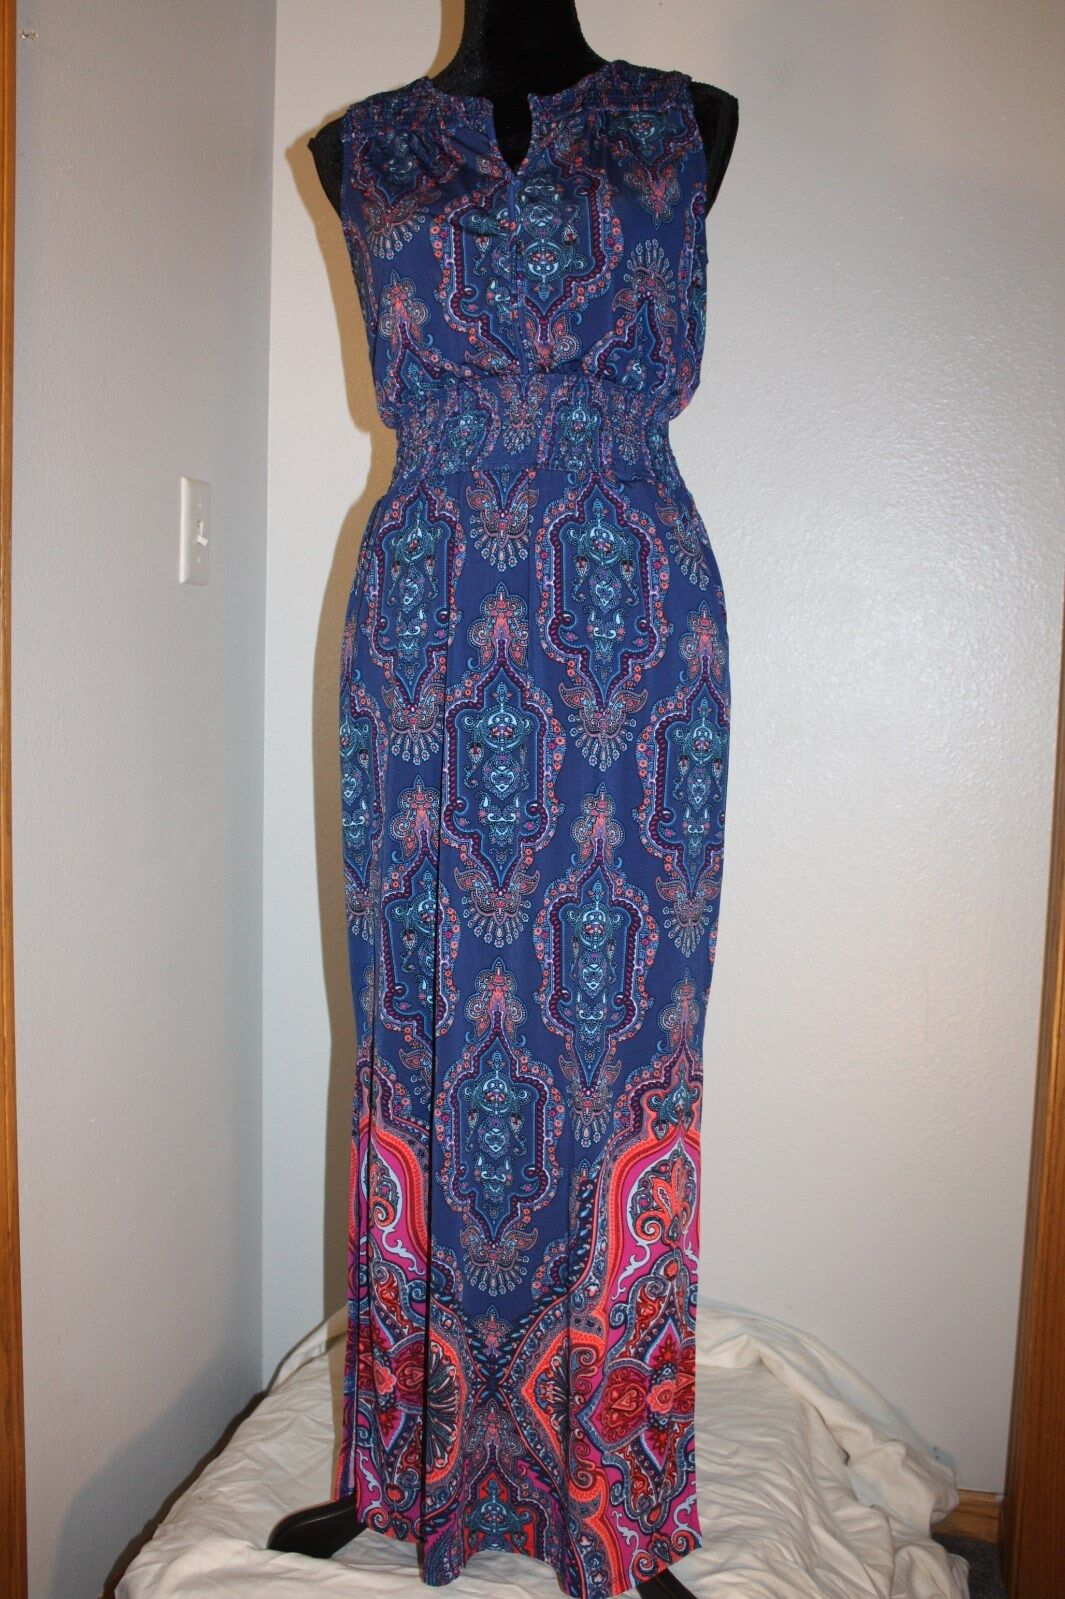 44a64ec606ccc Adrianna Adrianna Adrianna Papell Boutique Long Maxi Dress Size M Stunning  color 3bb067